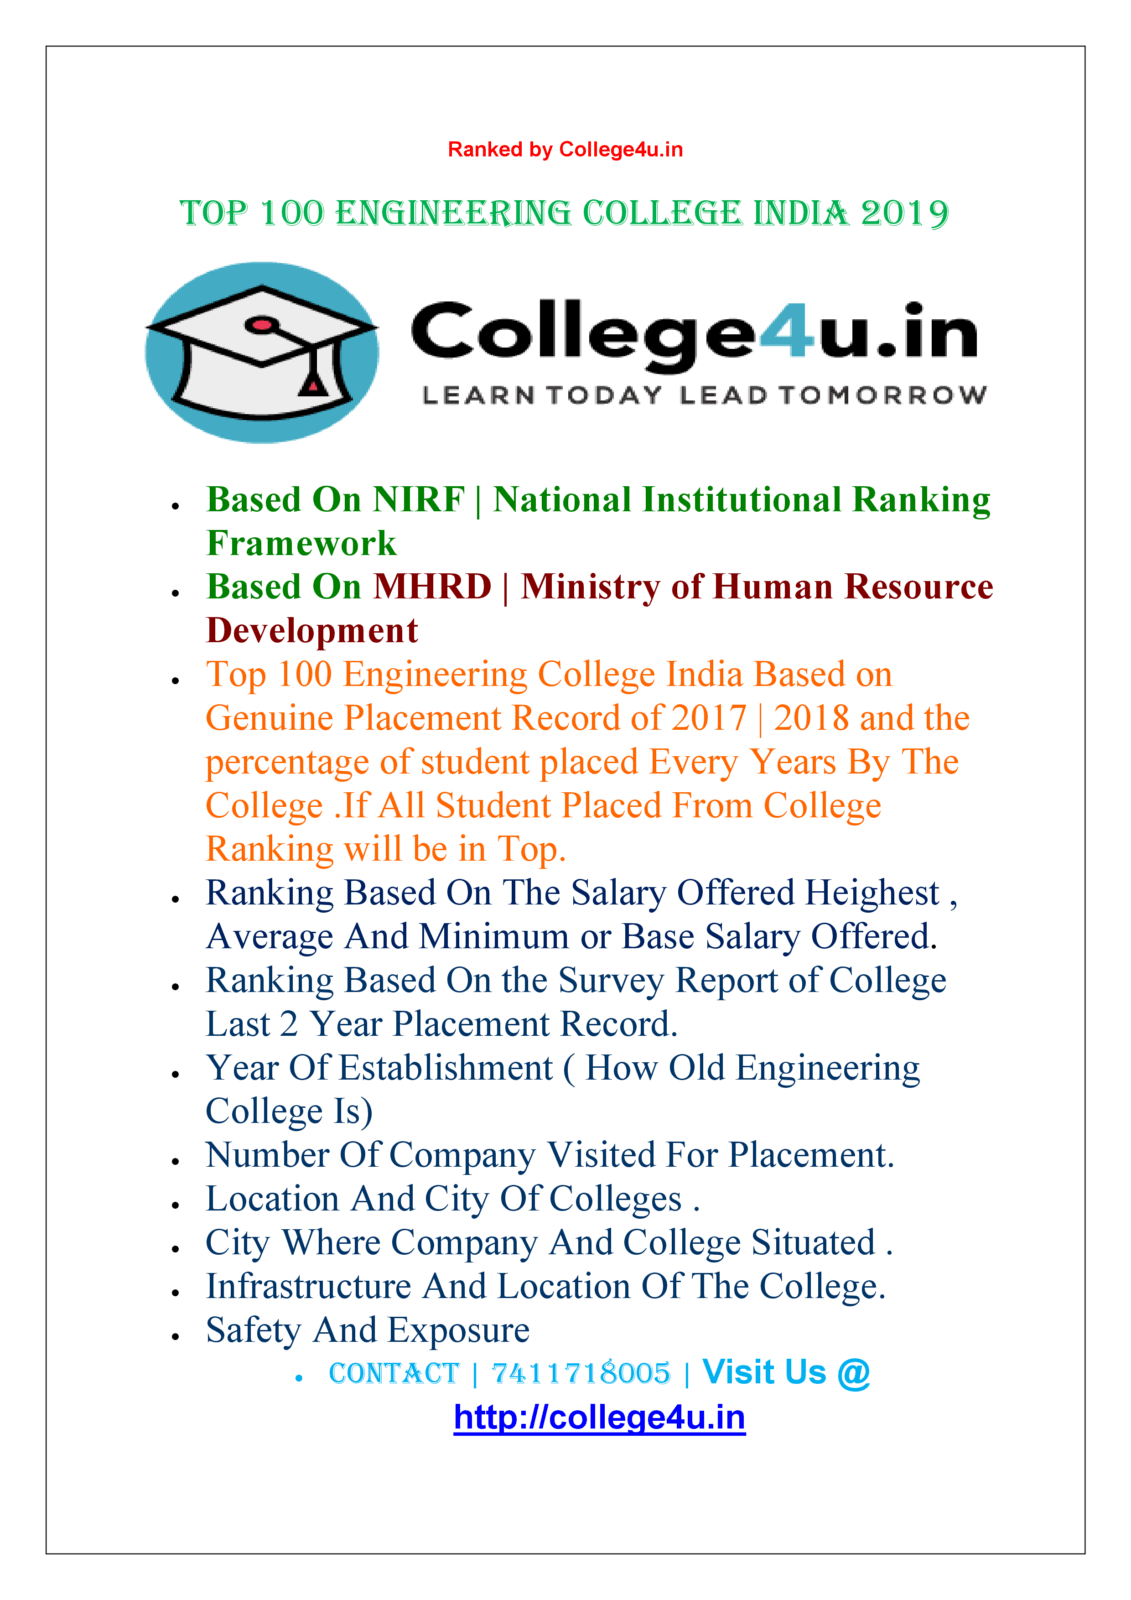 Top 100 Engineering College India | MHRD | NIRF Ranking 2019